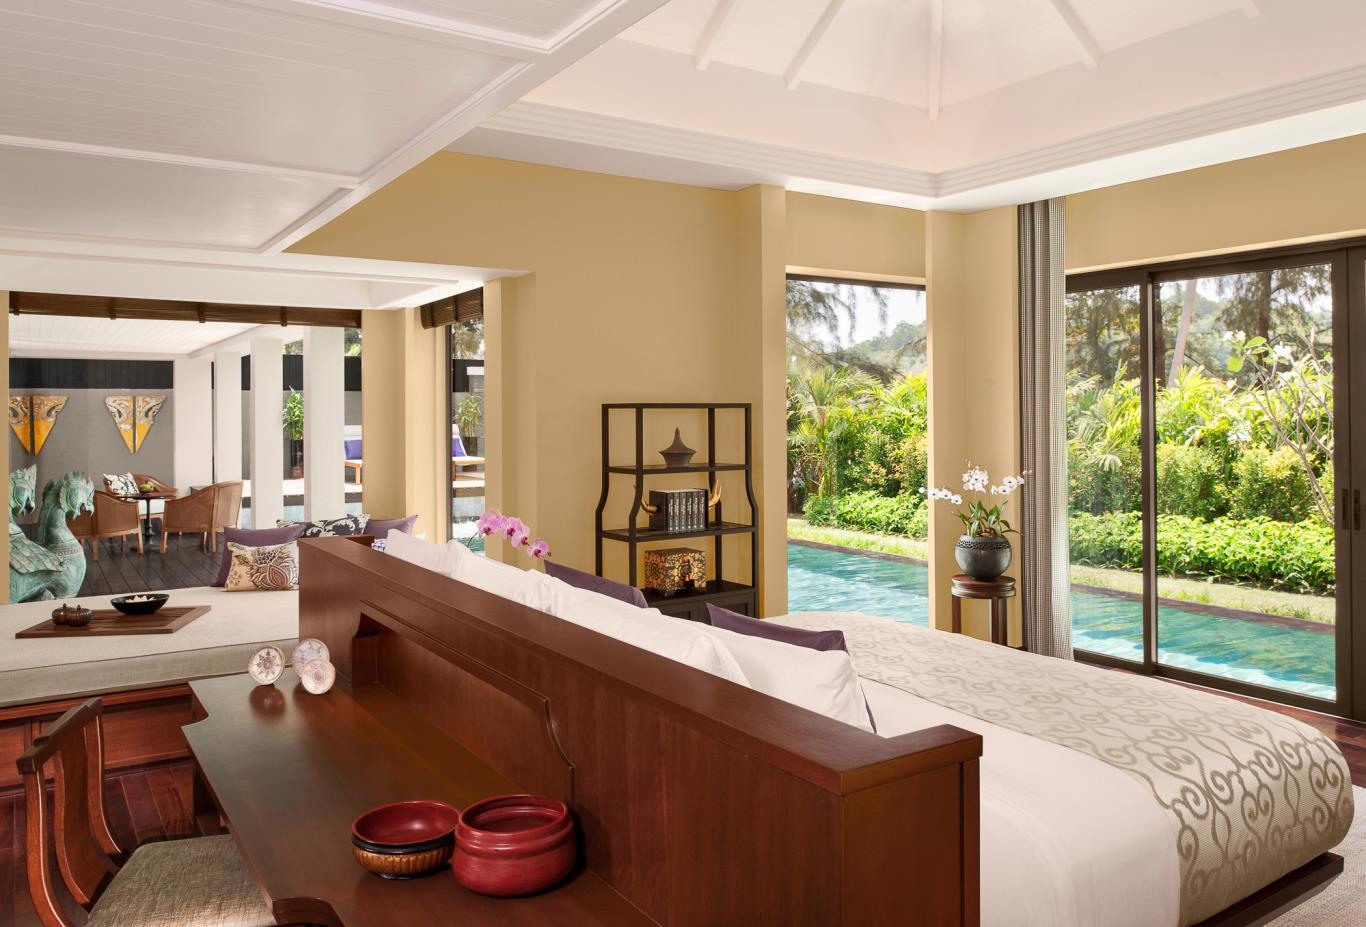 Anantara Pool Villa Master Bedroom